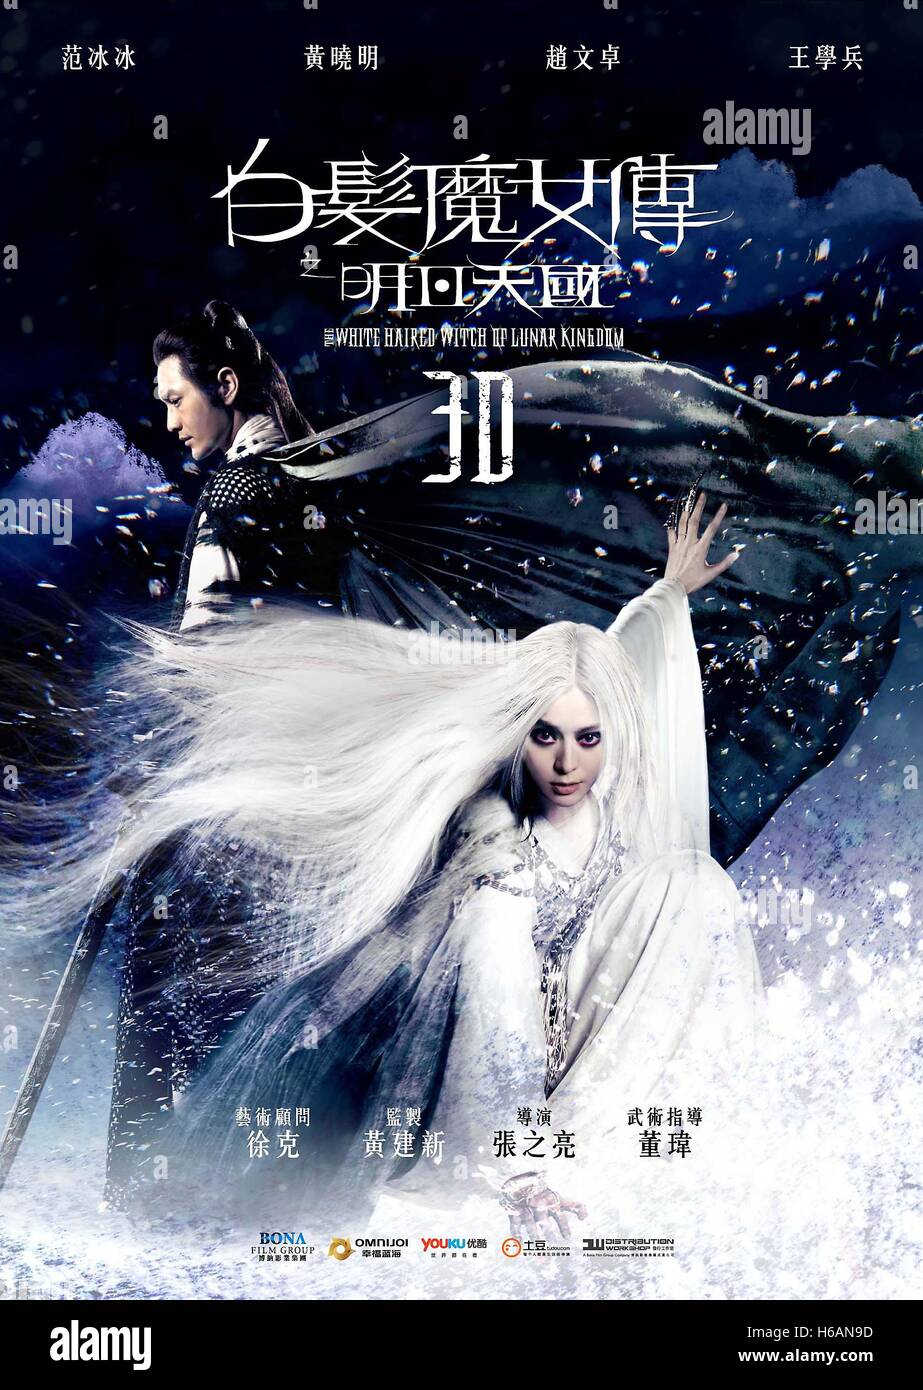 MOVIE POSTER THE WHITE HAIRED WITCH OF LUNAR KINGDOM (2014) - Stock Image